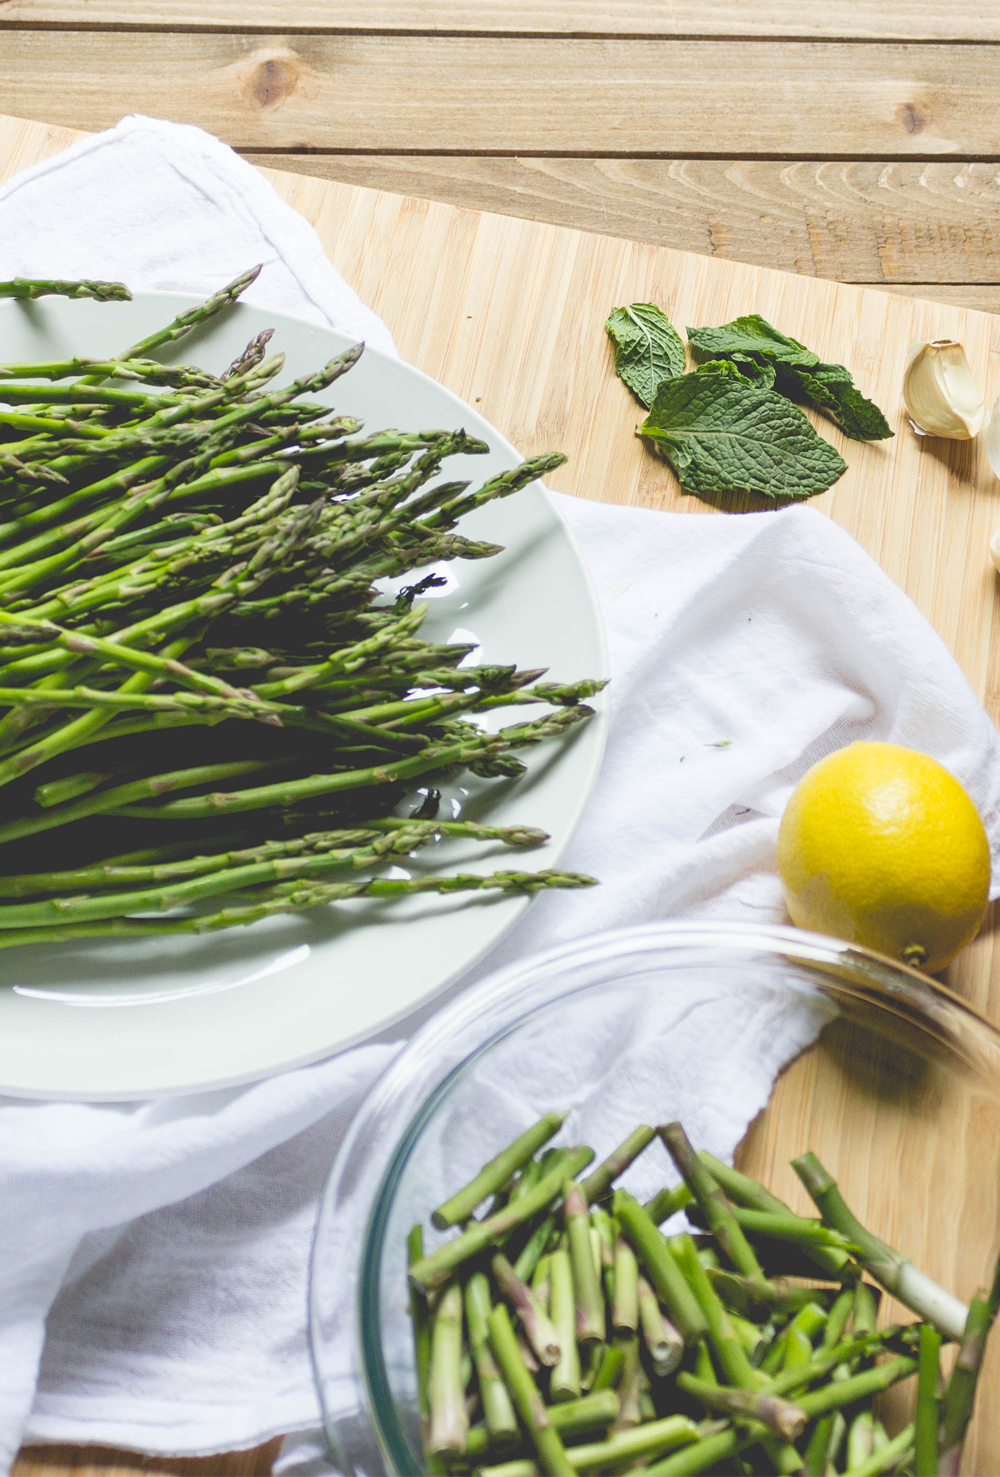 Meatless Monday: Asparagus with Mint and Lemon | SoulBeet